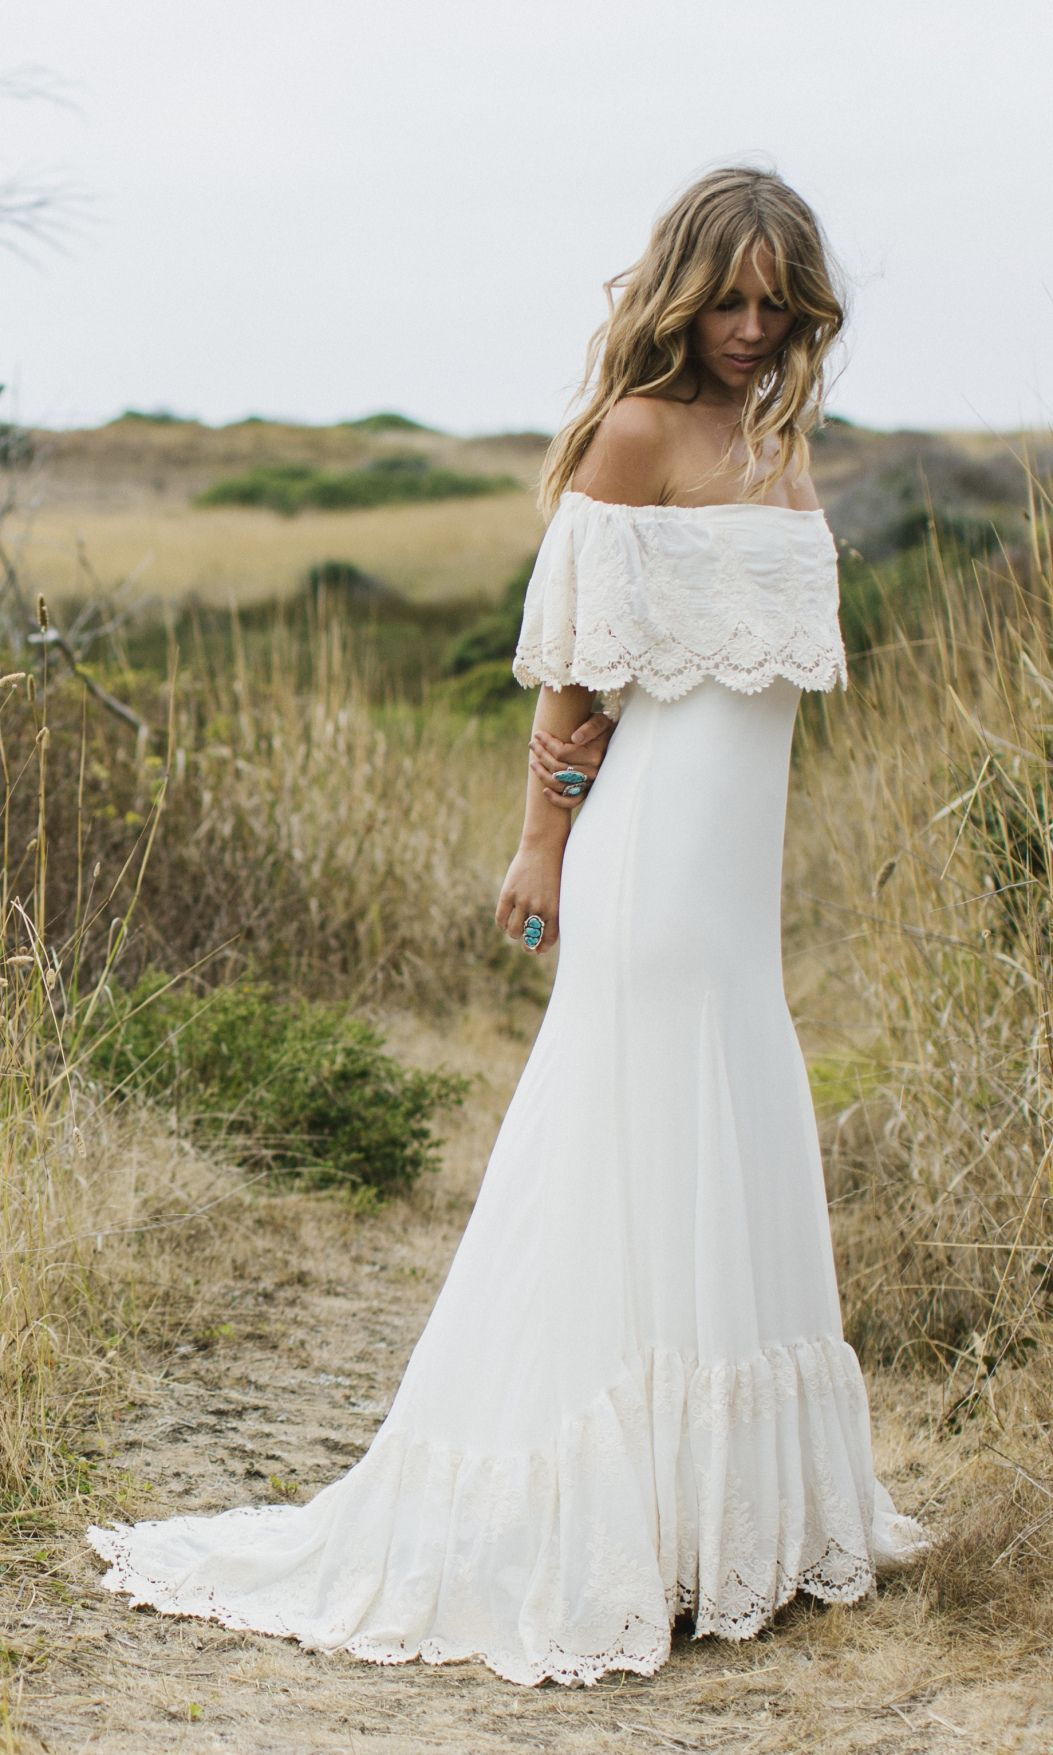 Country dresses for weddings   Stretchy Wedding Dress  Country Dresses for Weddings Check more